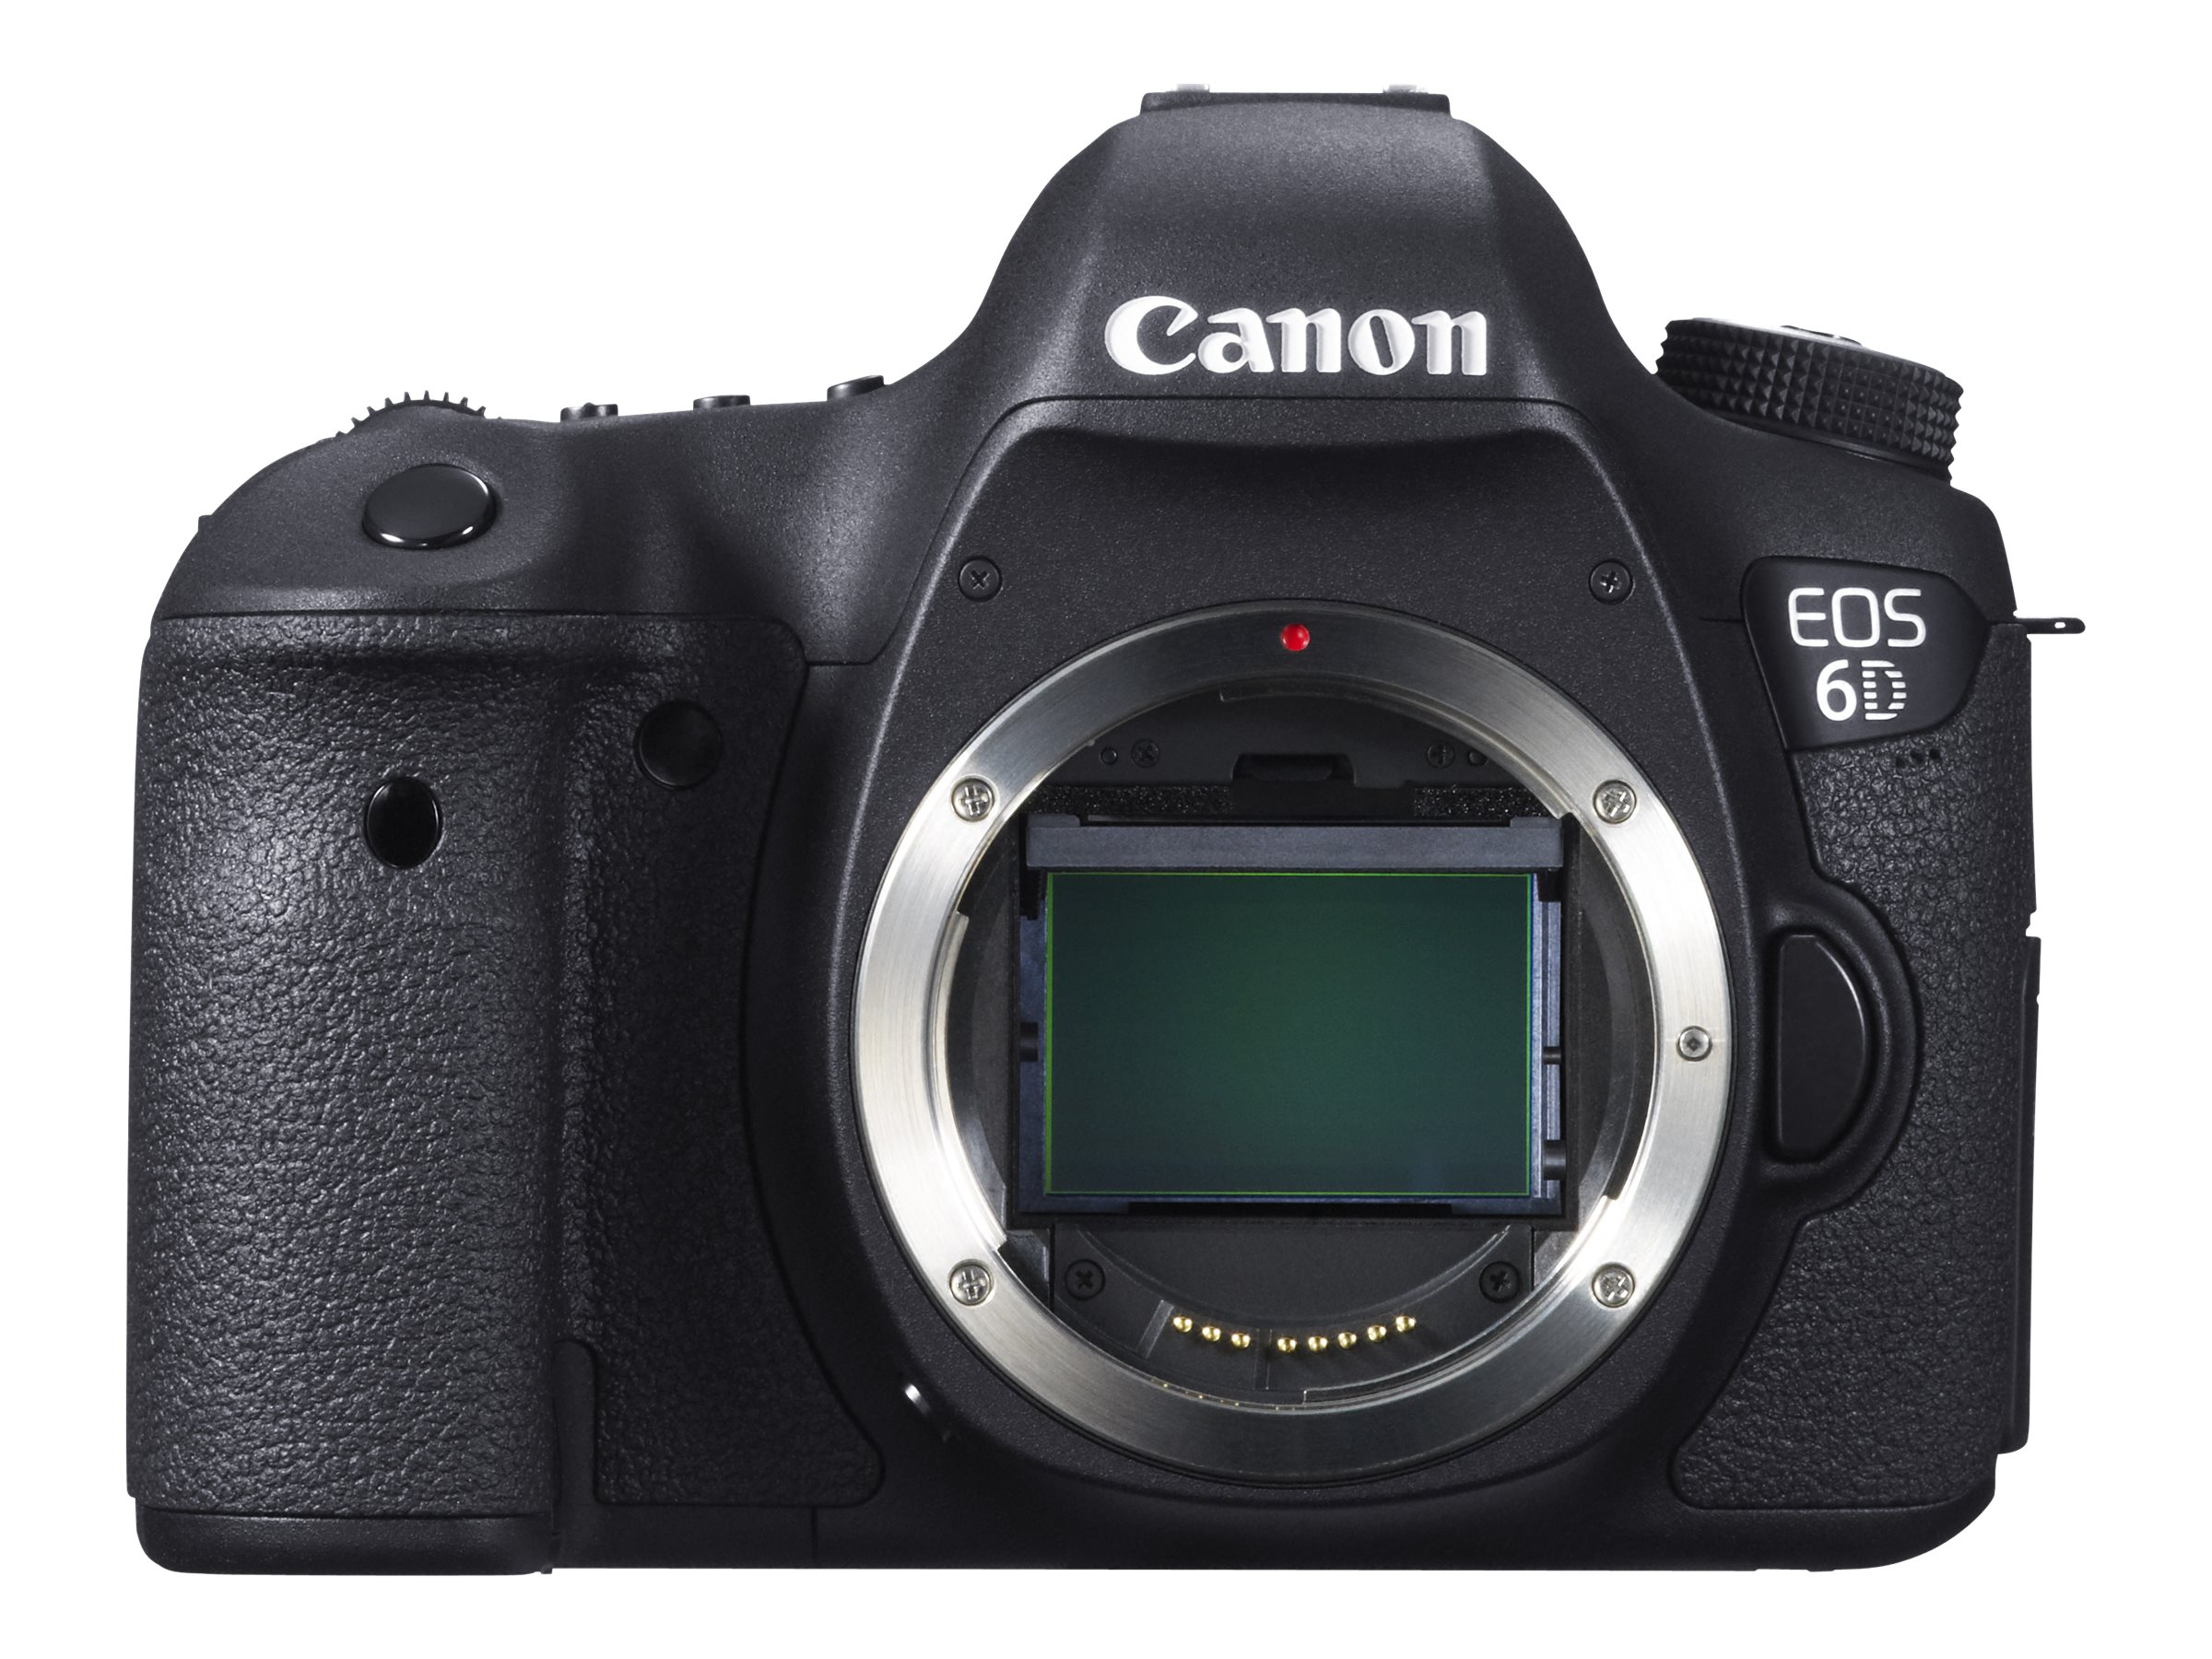 Canon EOS 6D DSLR Camera with 24-105mm f 3.5-5.6 STM Lens, 8035B106